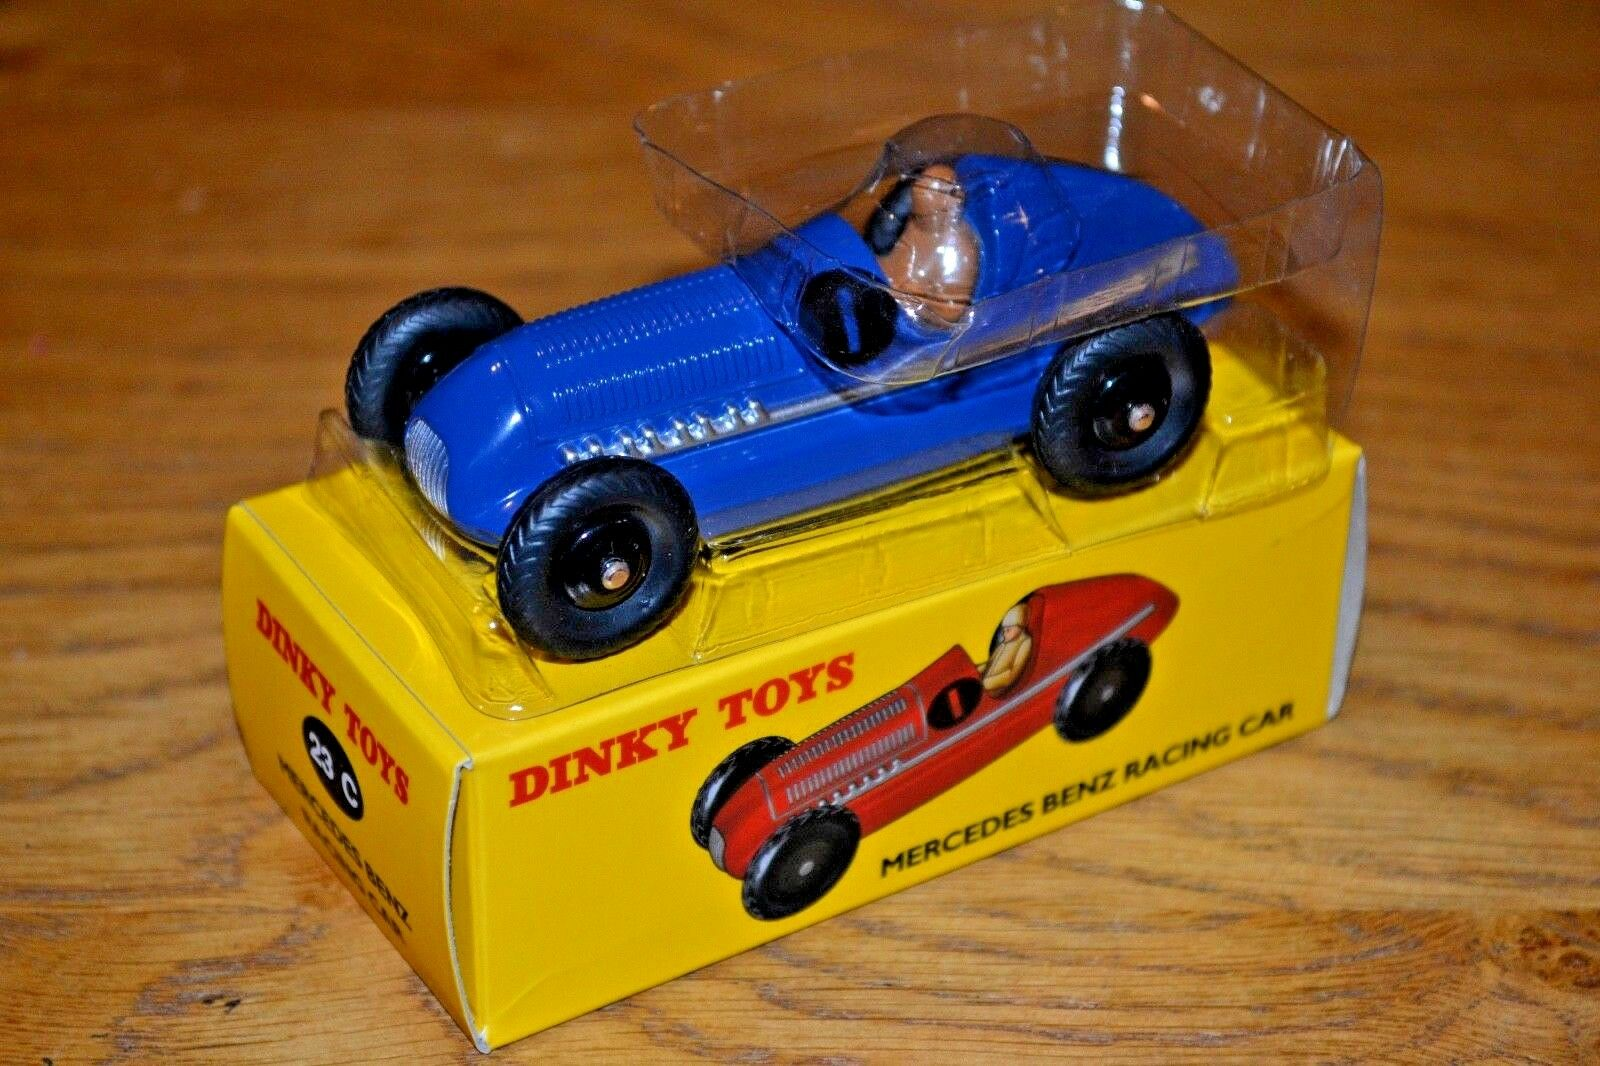 French Dinky Toys Atlas Edition Edition Edition Diecast No. 23C Mercedes Benz Racing Car 30f4c6